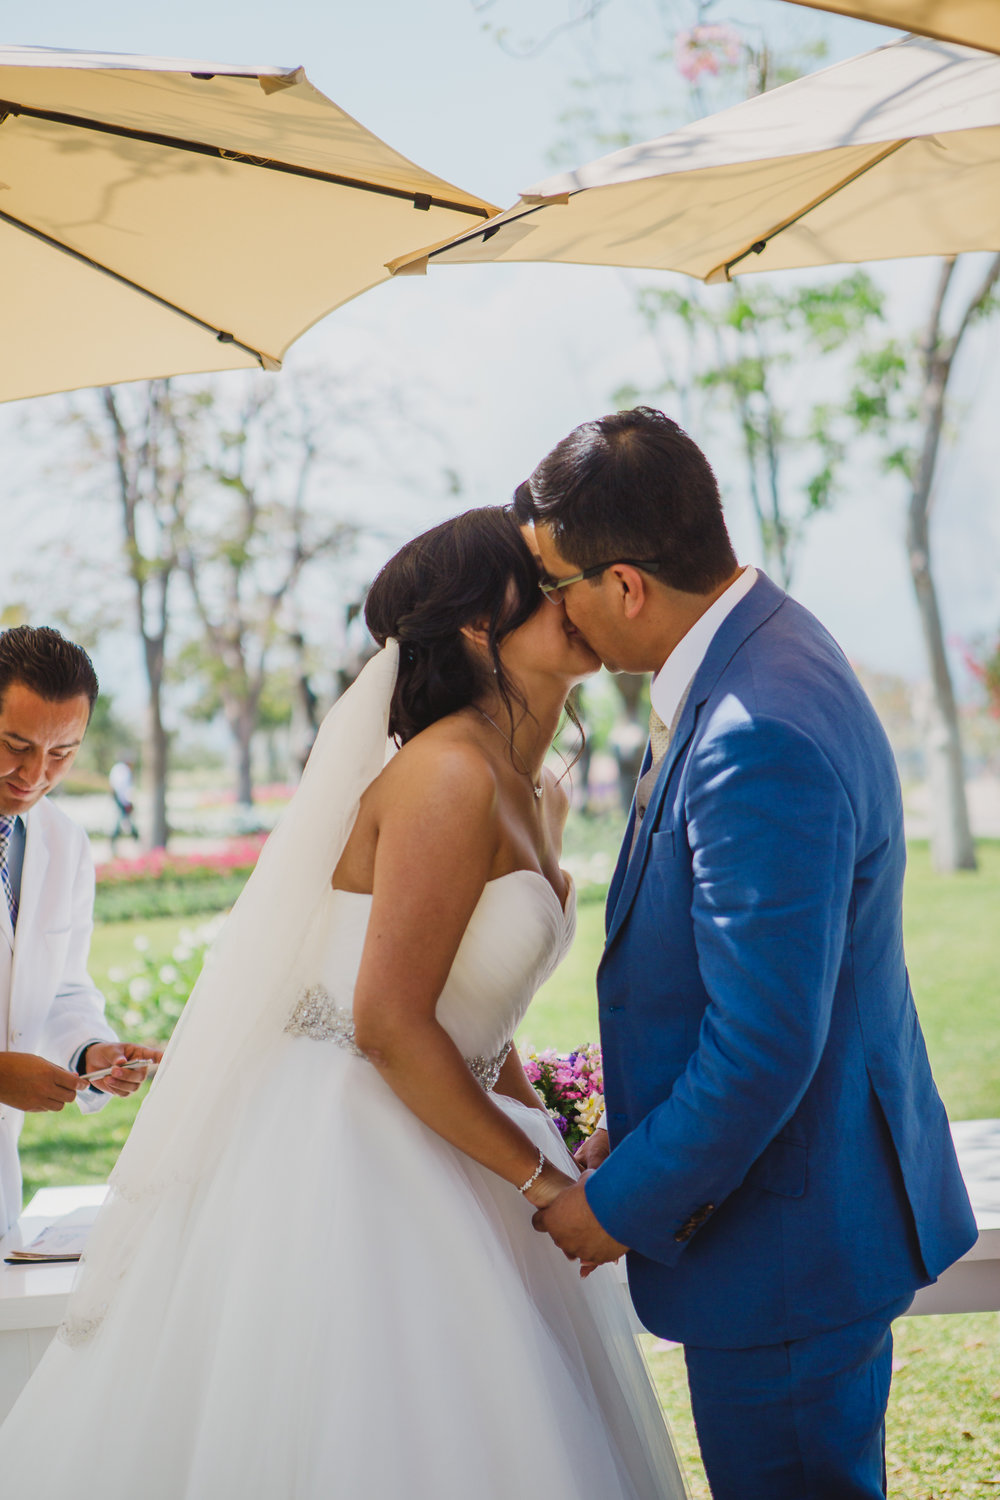 Danny and Hector Blog_ Jardines de Mexico_ Destination Wedding_ Elizalde Photography (76 of 265).jpg